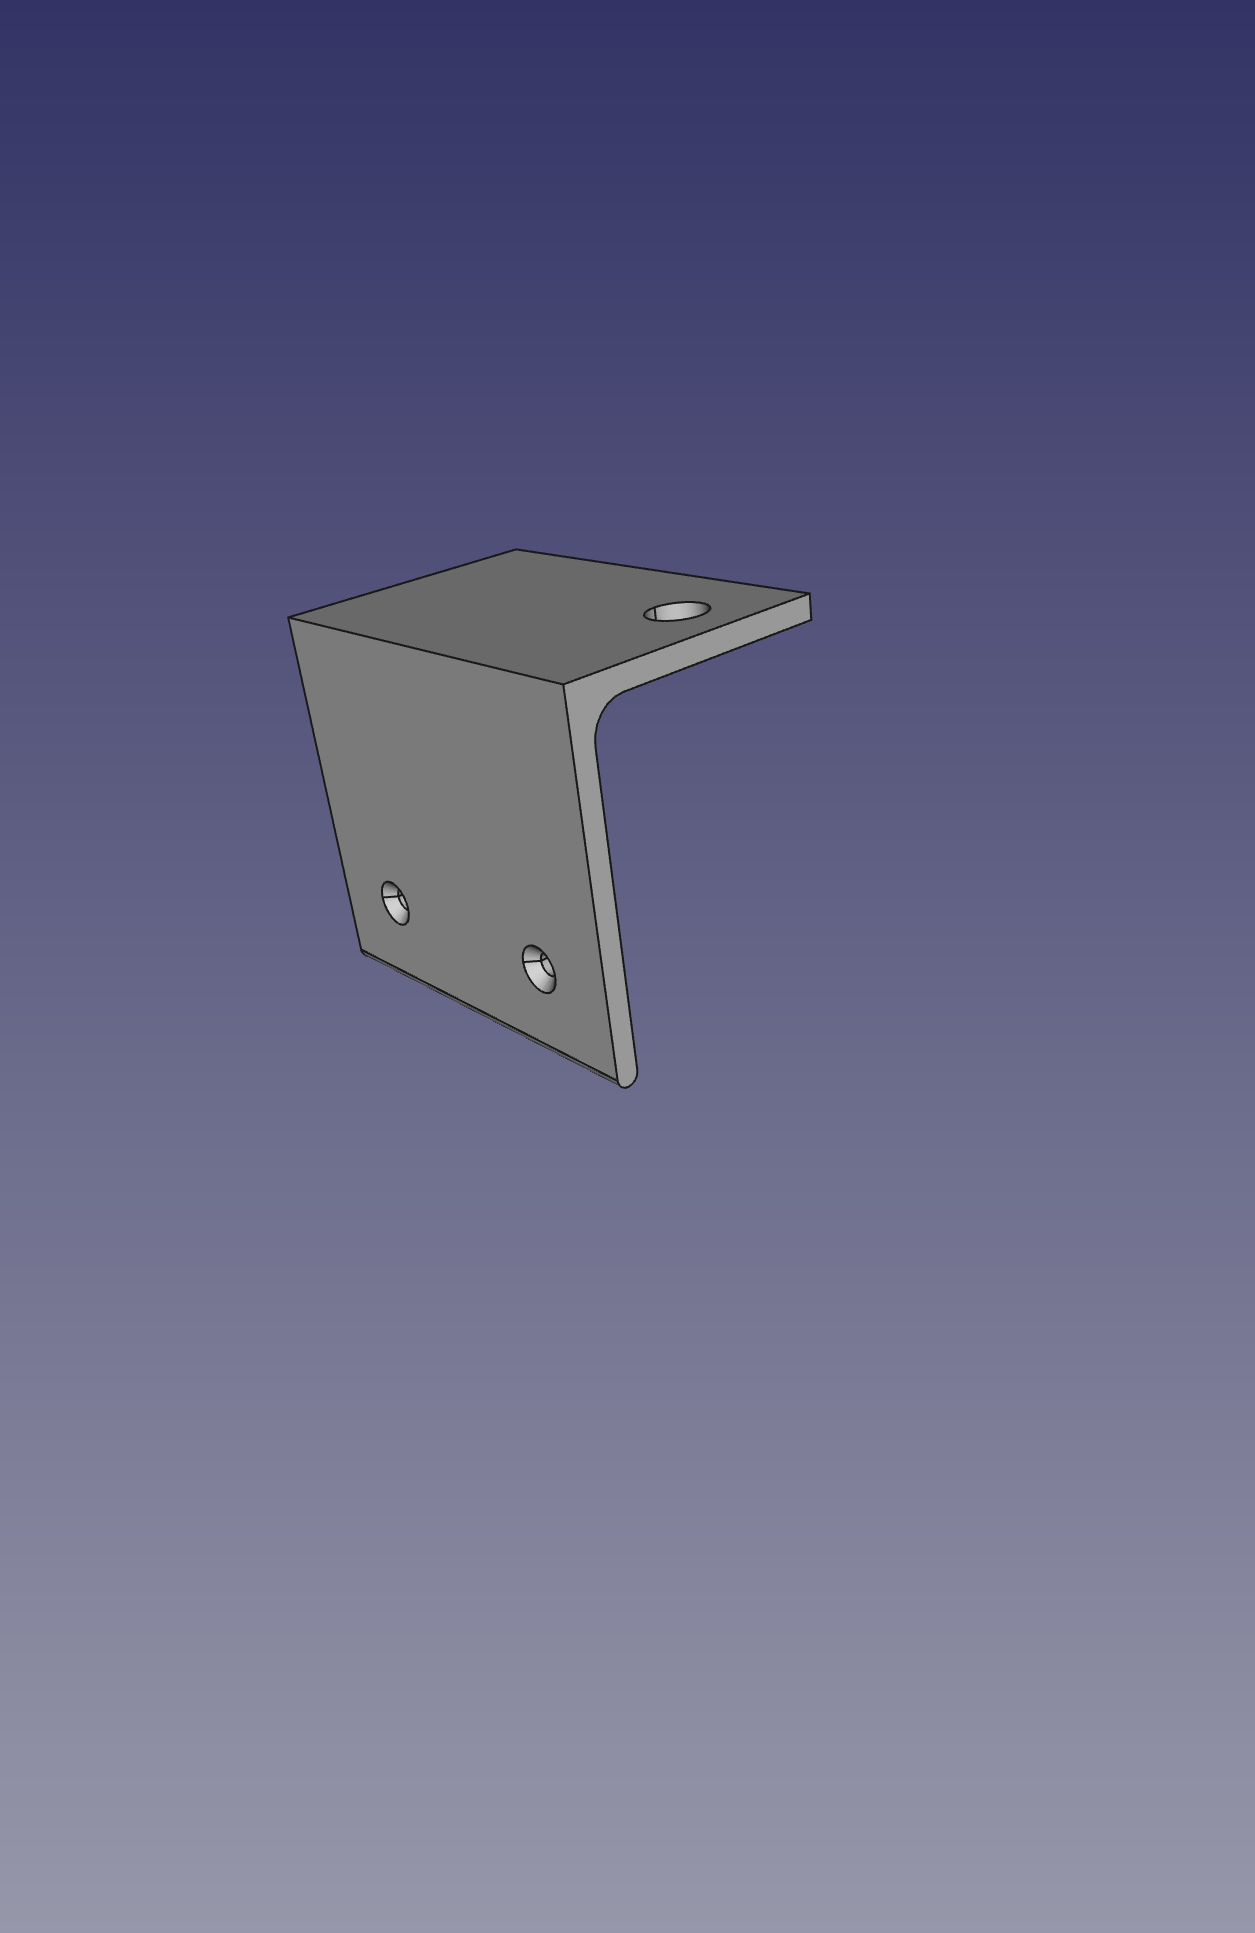 cad-angle-iron-finished.png